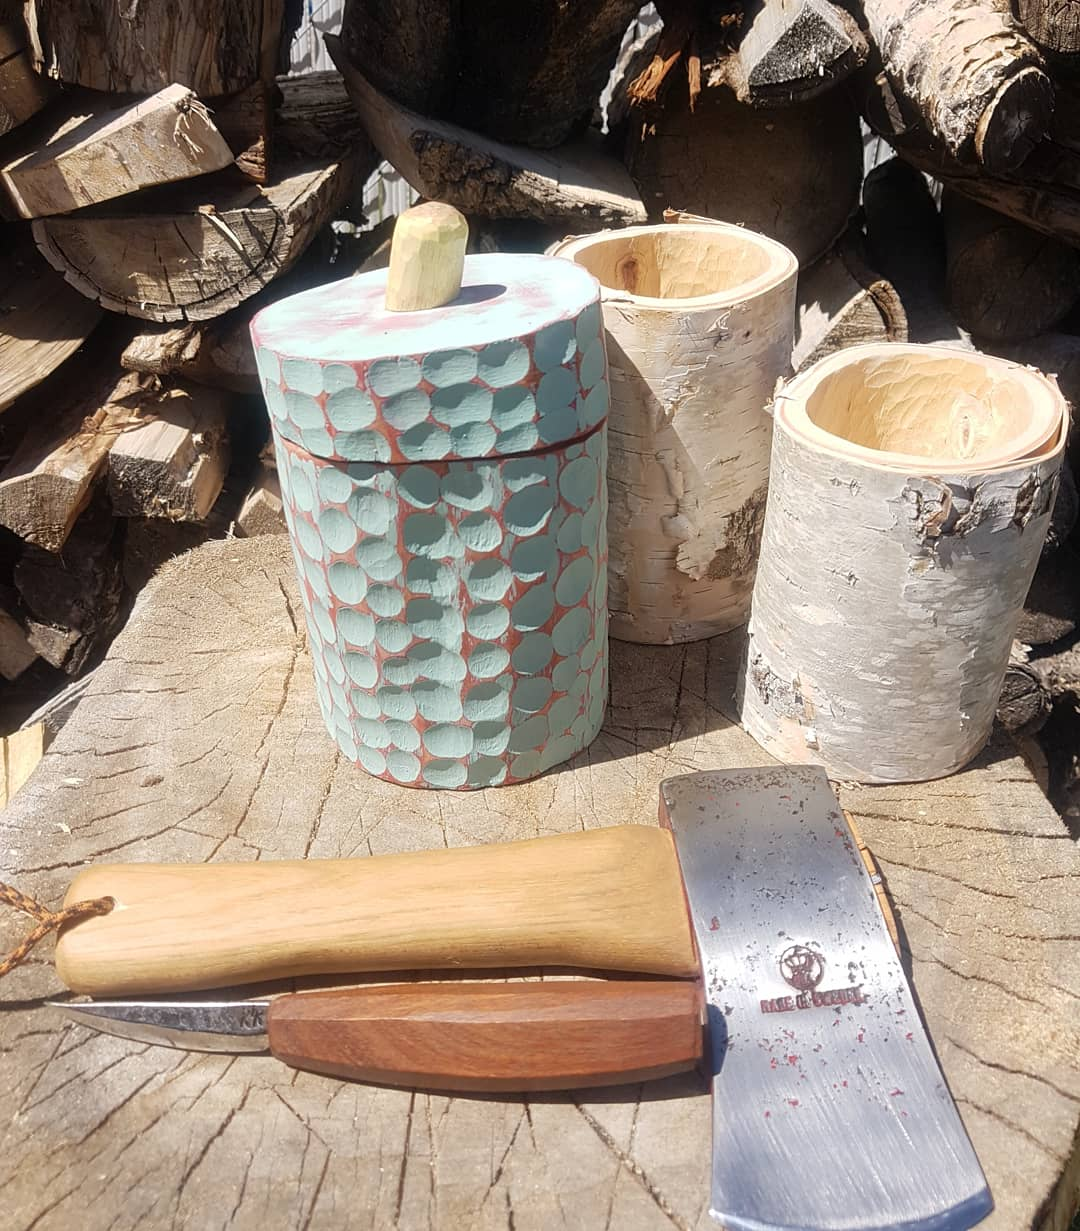 Axe, hollowed out wood, carved wooden contrainer